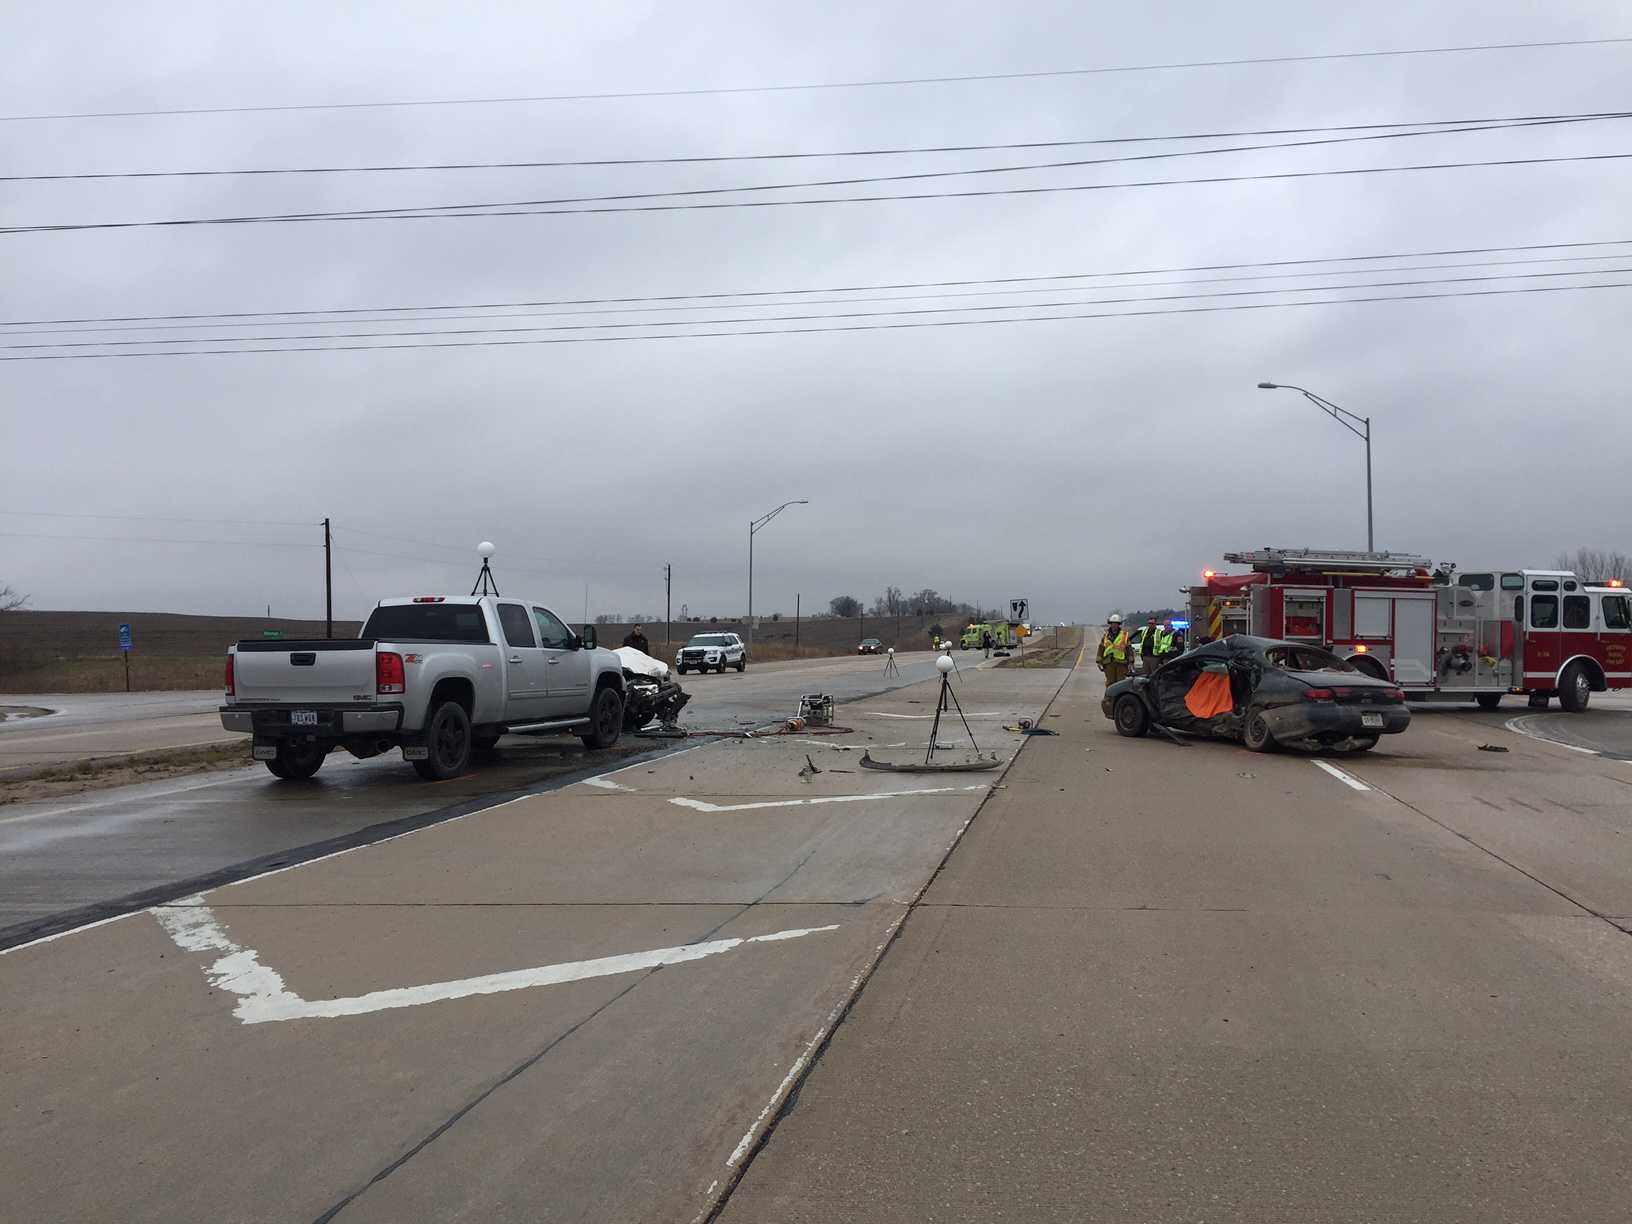 Driver killed in 3-vehicle collision, Nebraska officials say